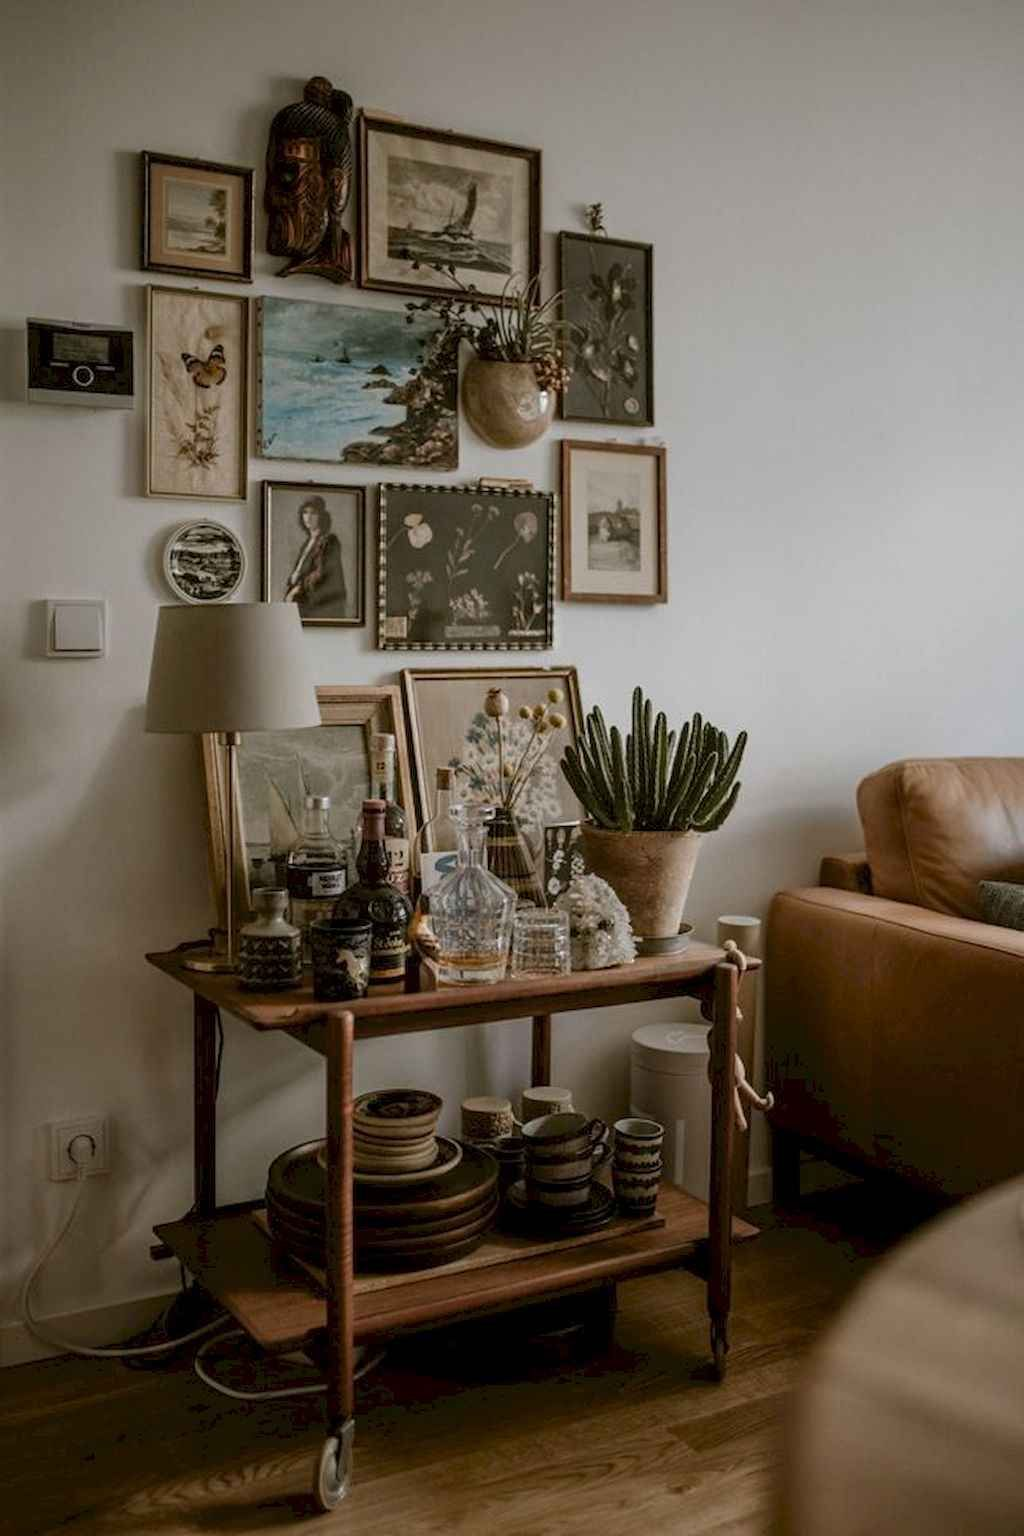 60 Cozy Bohemian Living Room Decor Ideas Gladecor Com In 2020 Bohemian Living Room Boho Chic Living Room Bohemian Living